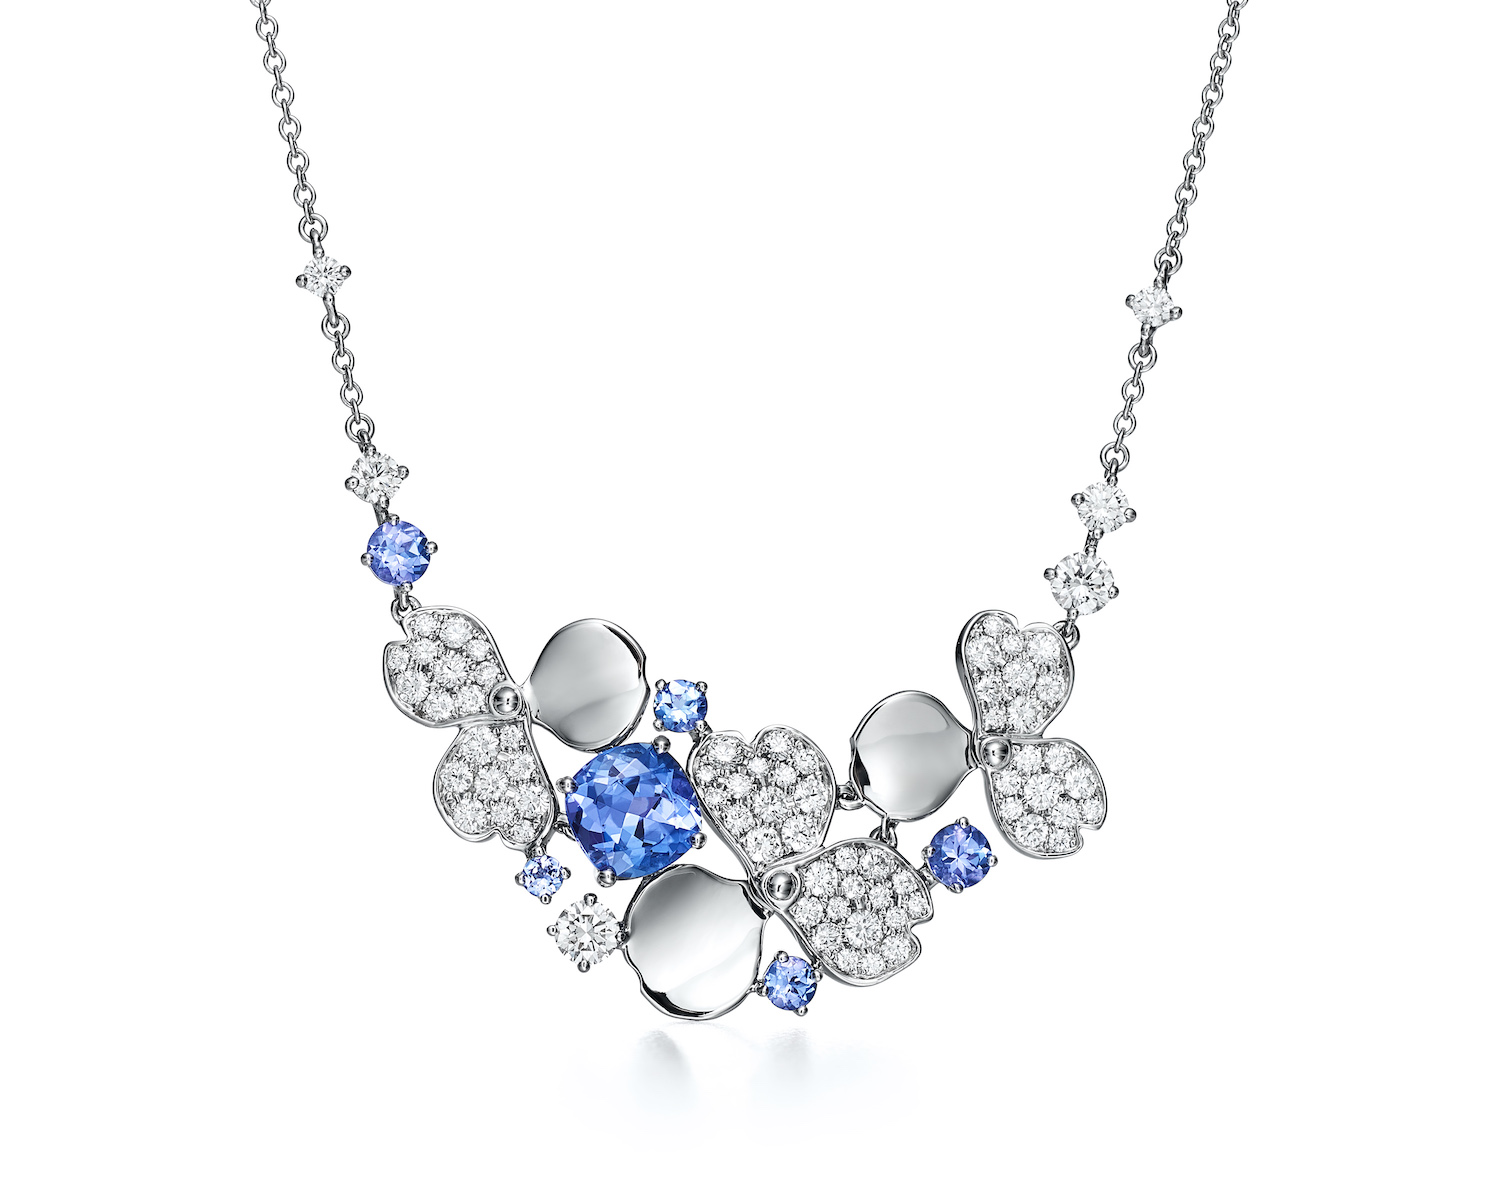 Tiffany Paper Flowers necklace in platinum with diamonds and tanzanites